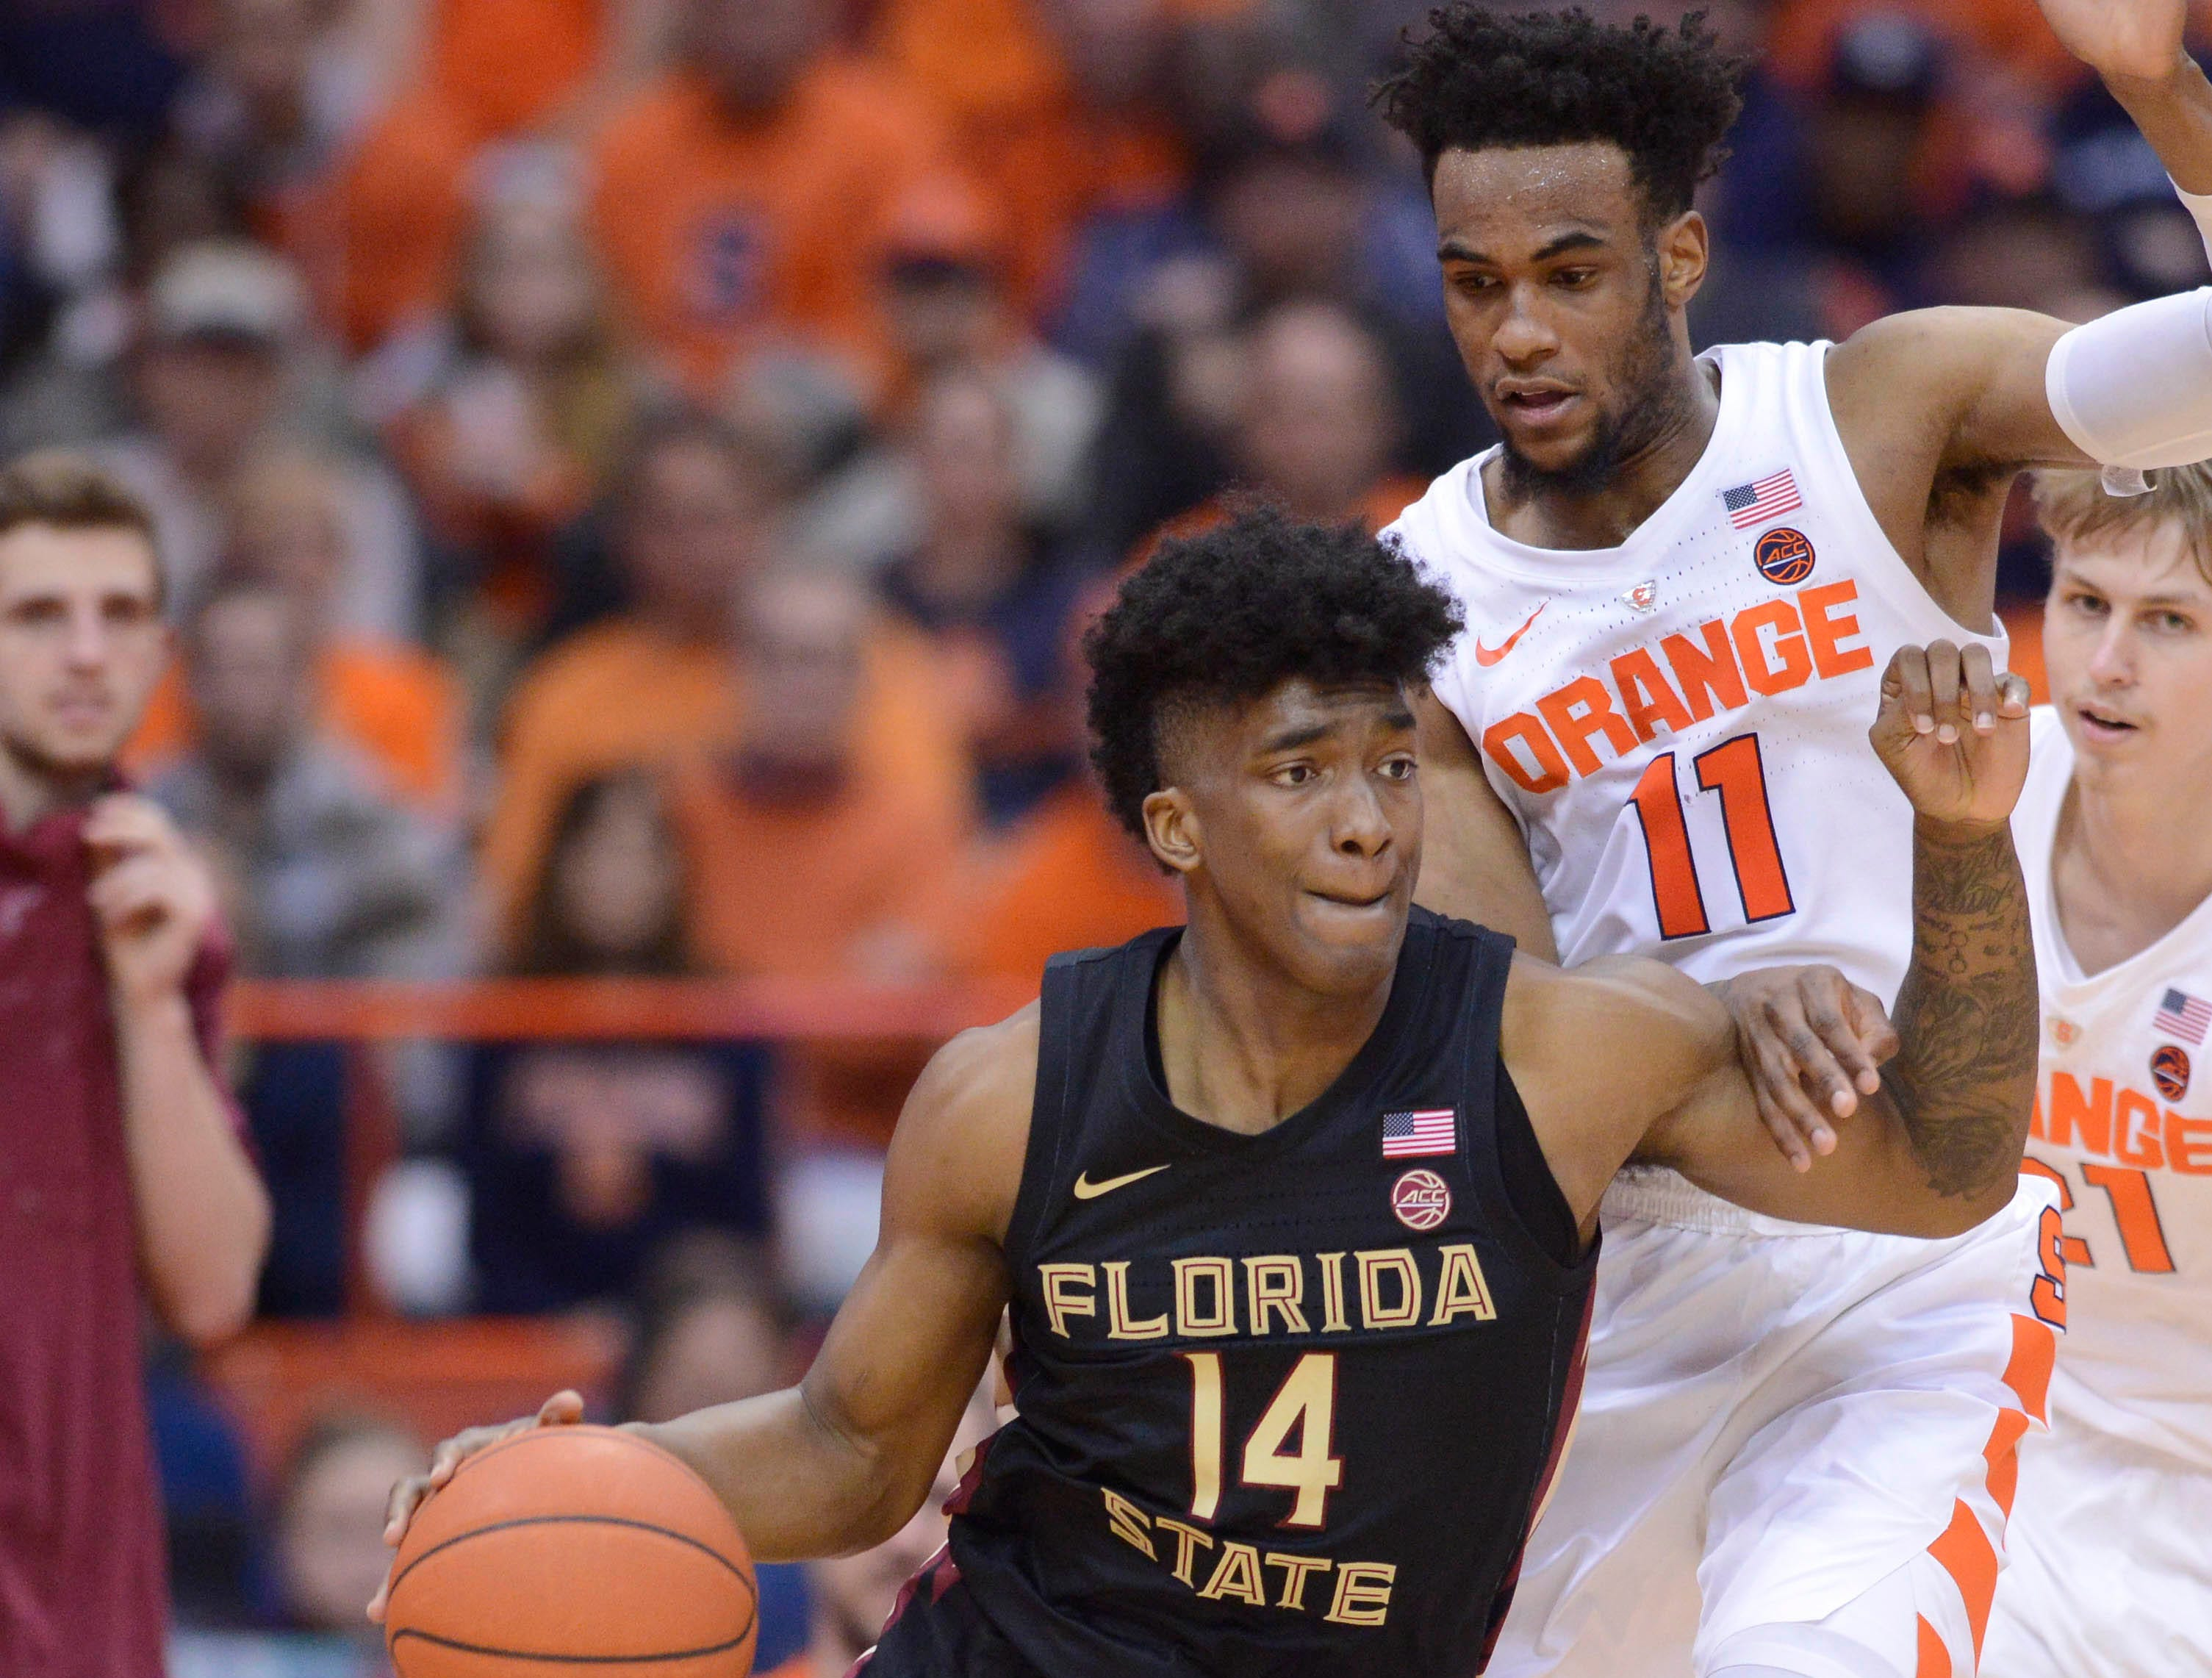 Feb 5, 2019; Syracuse, NY, USA; Florida State Seminoles guard Terance Mann (14) dribbles the ball as Syracuse Orange forward Oshae Brissett (11) defends in the second half at the Carrier Dome. Mandatory Credit: Mark Konezny-USA TODAY Sports